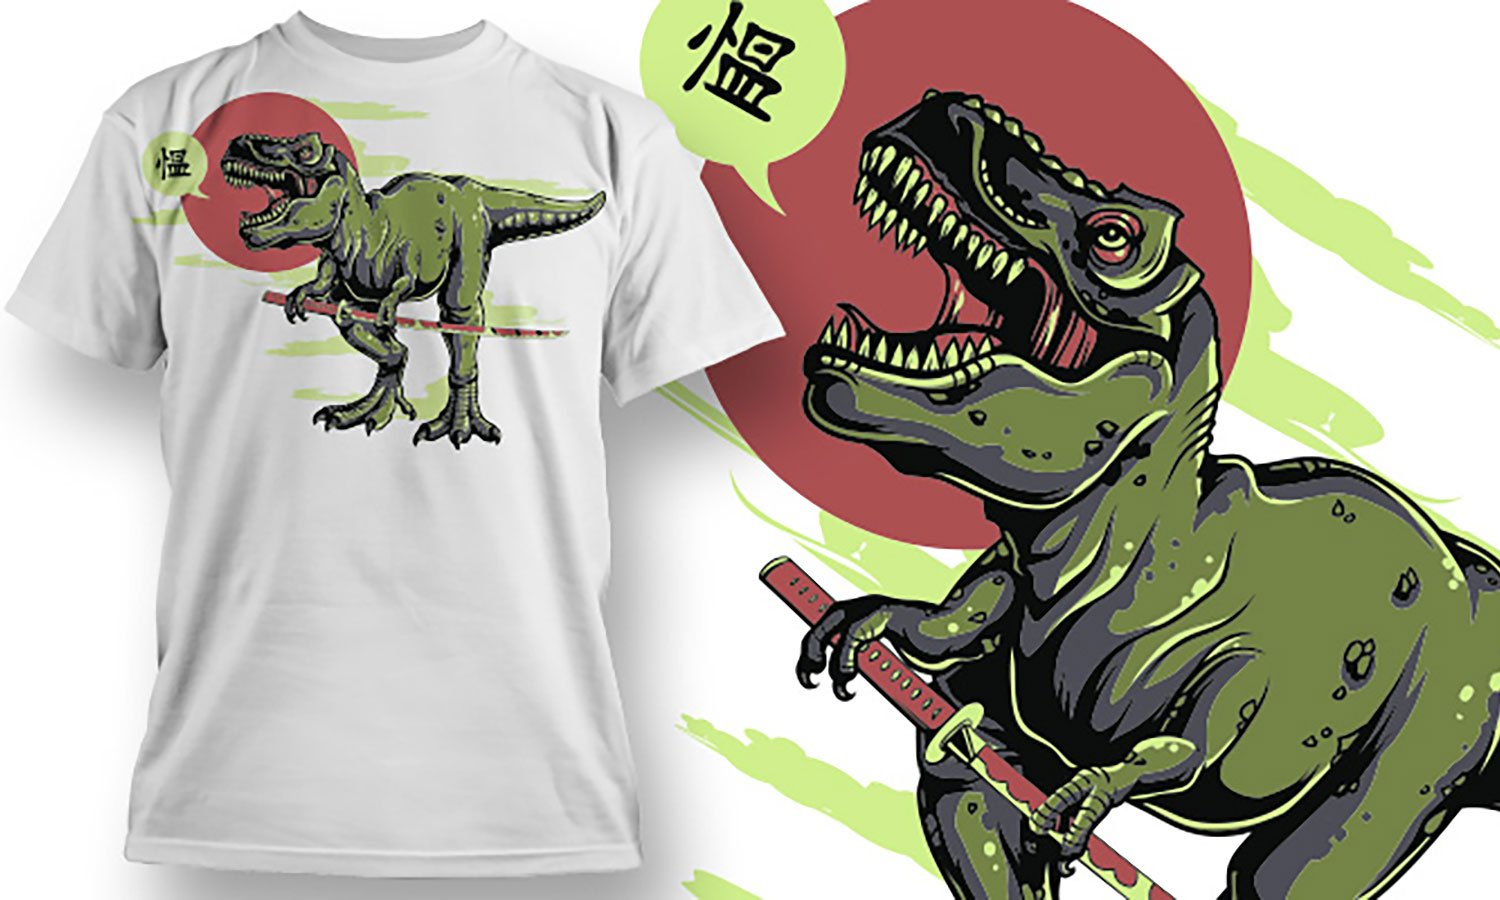 T-Rex - Printed T-Shirt for Men, Women and Kids - TS383